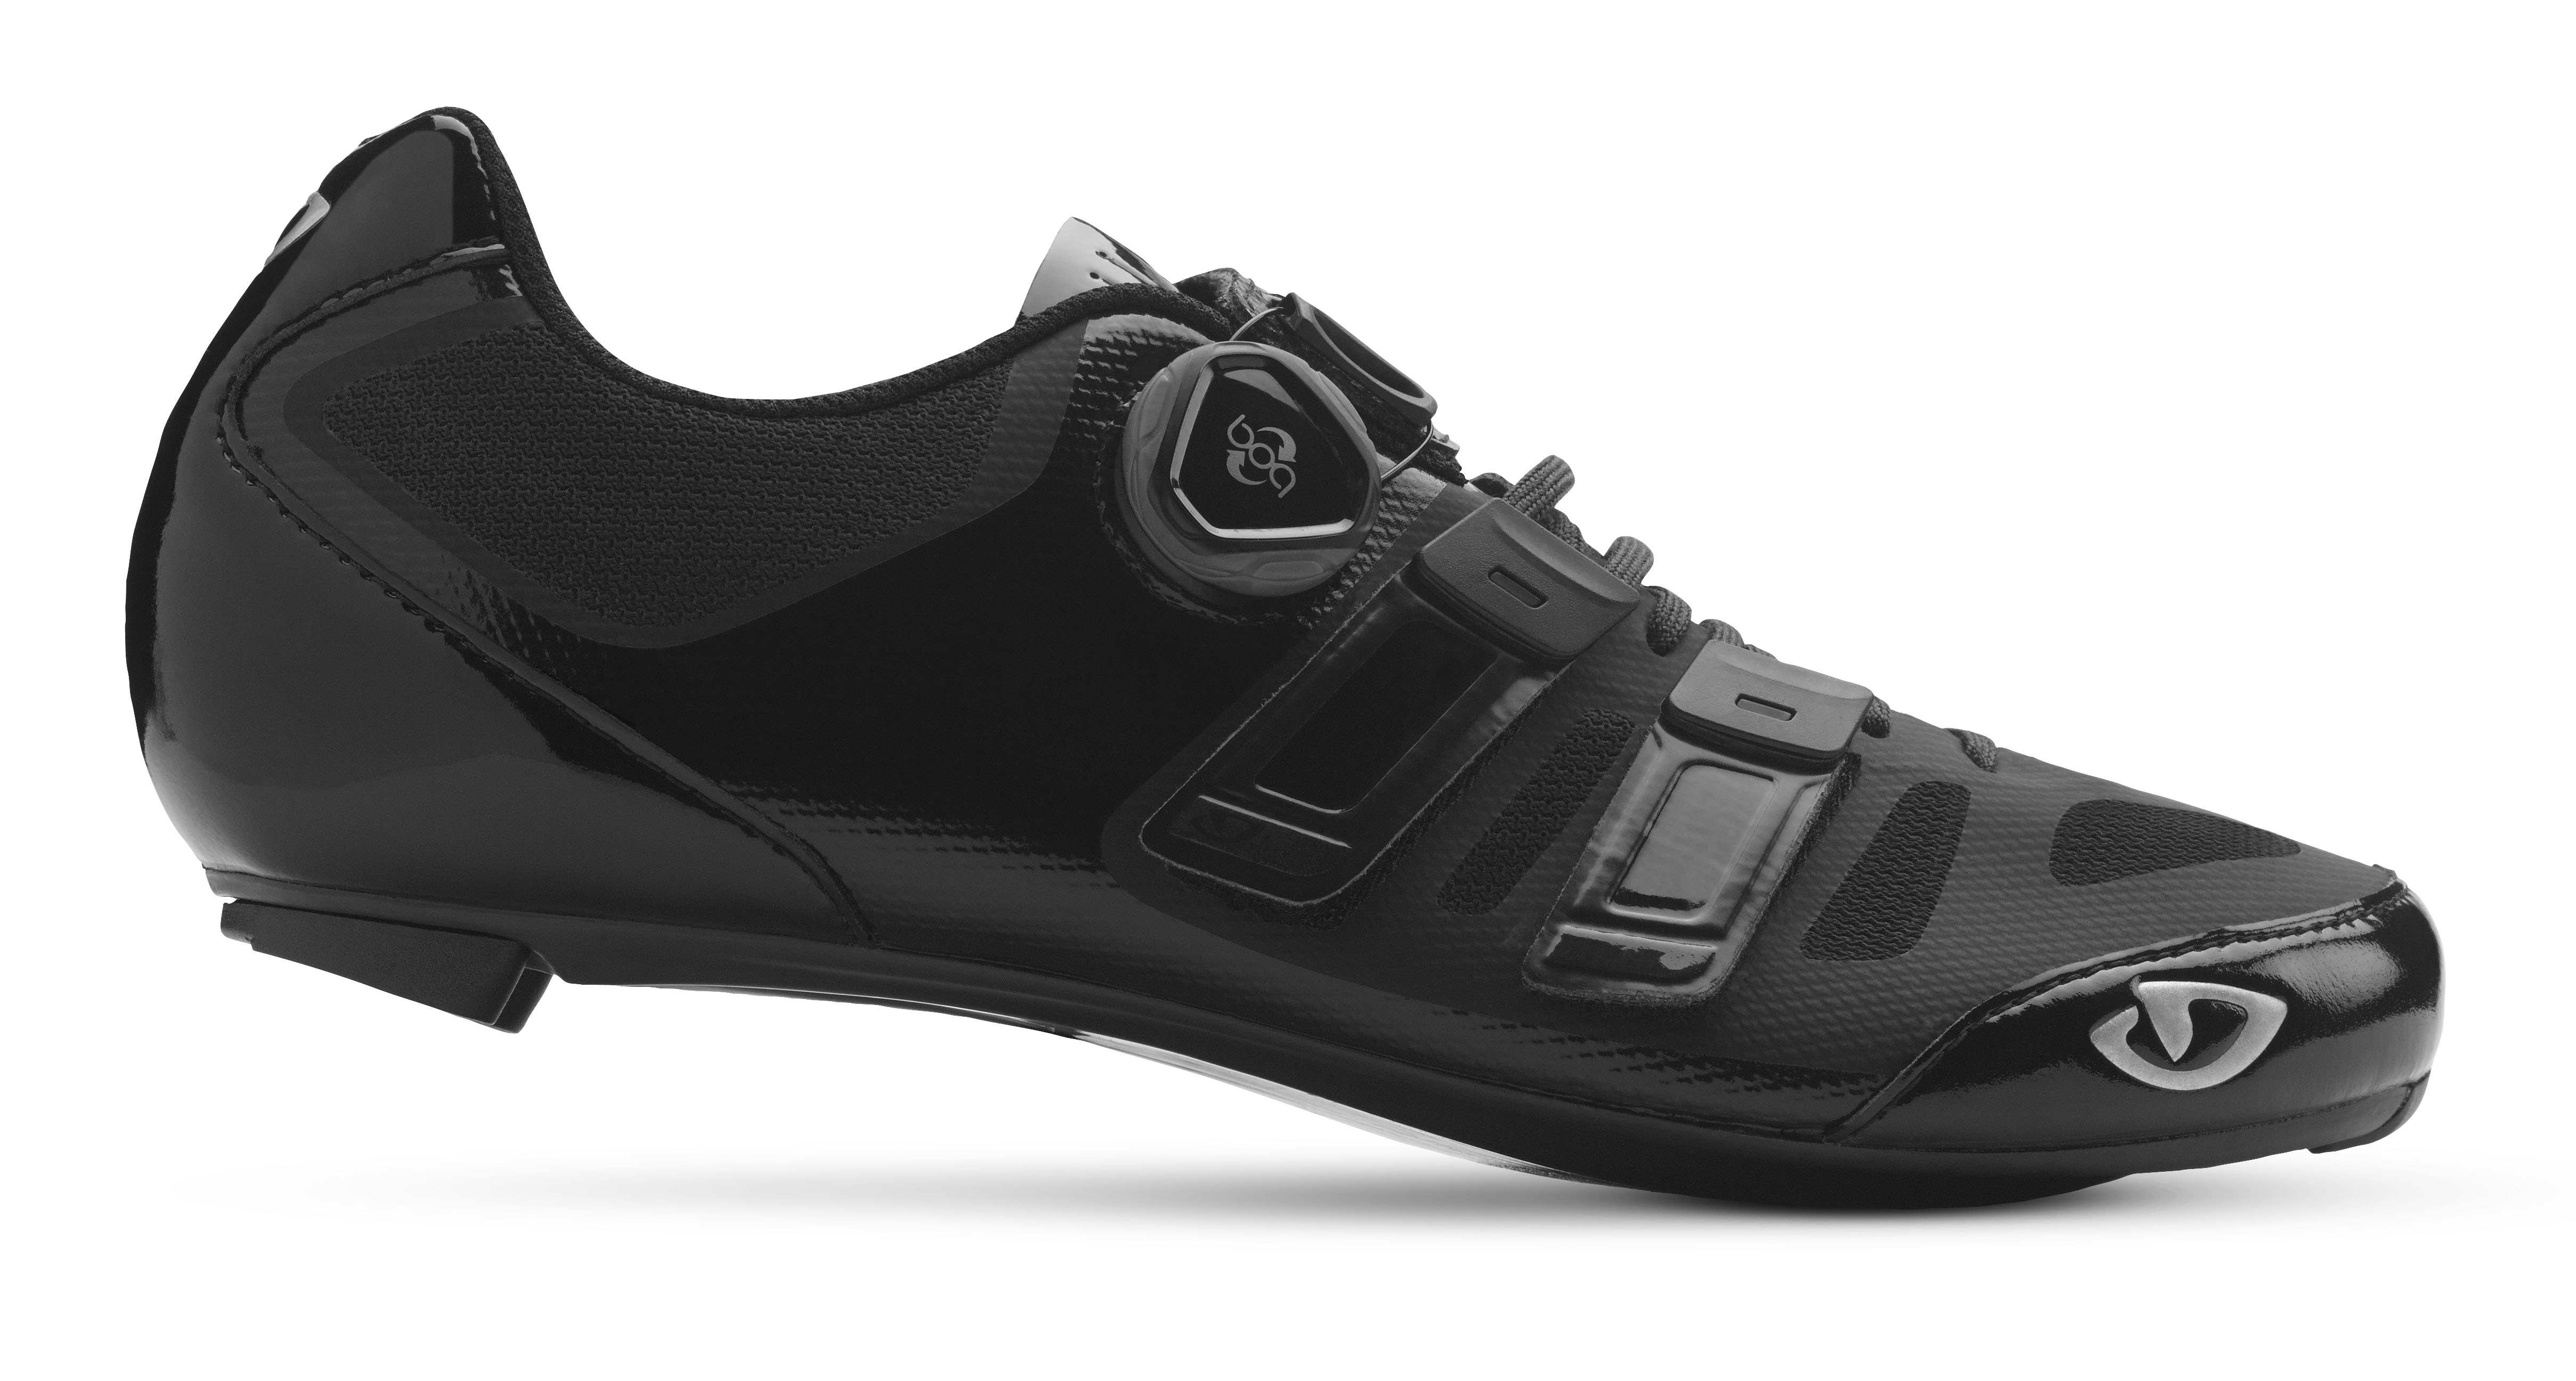 Giro cykelsko Sentrie Techlace Sort 41 SORT 41 | Shoes and overlays